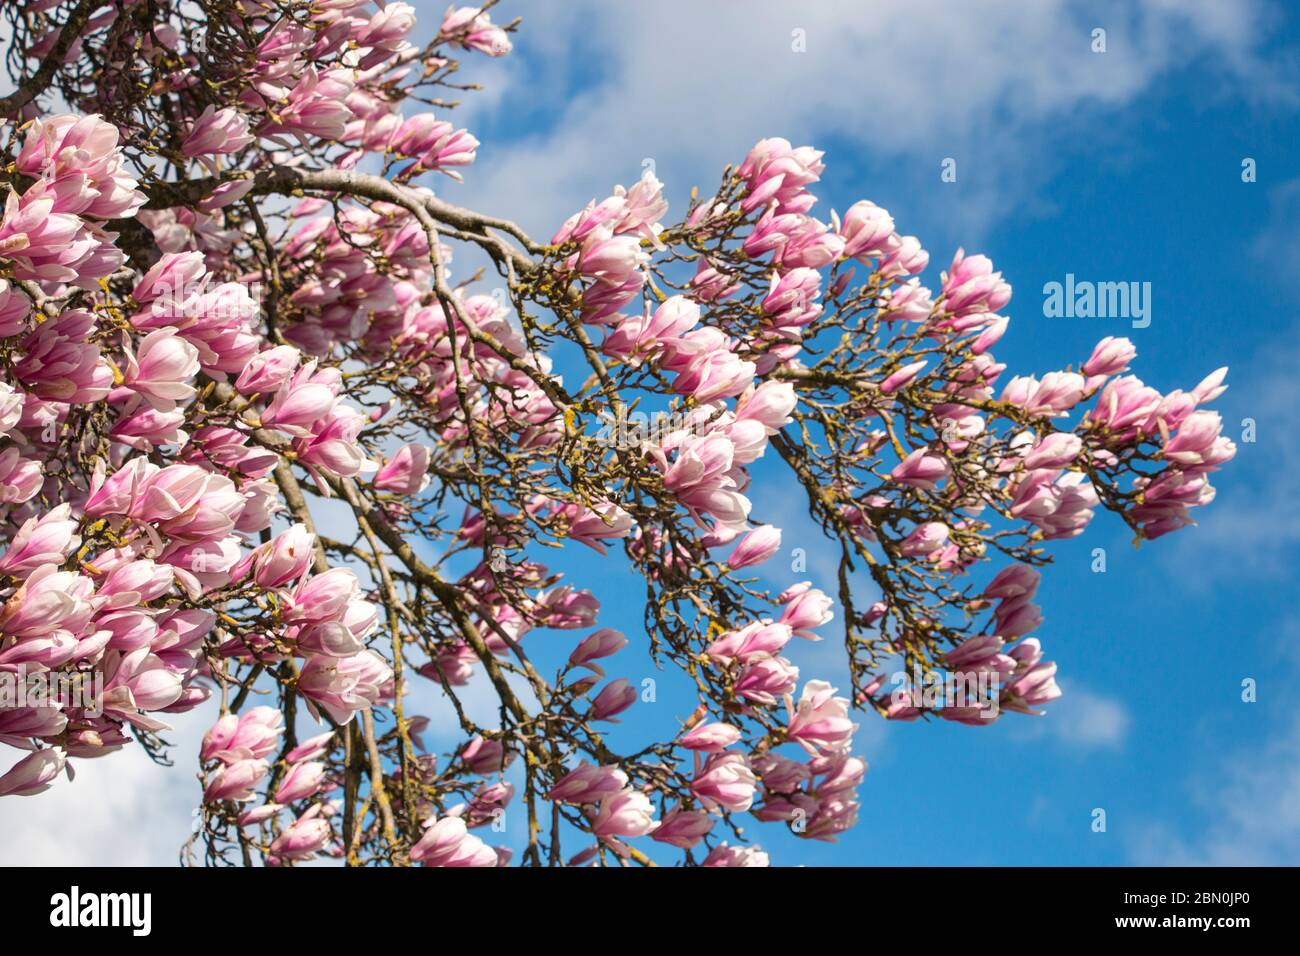 Magnolia tree in pink Flowers, Magnolioideae of the family Magnoliaceae, Stratford upon Avon England UK Stock Photo